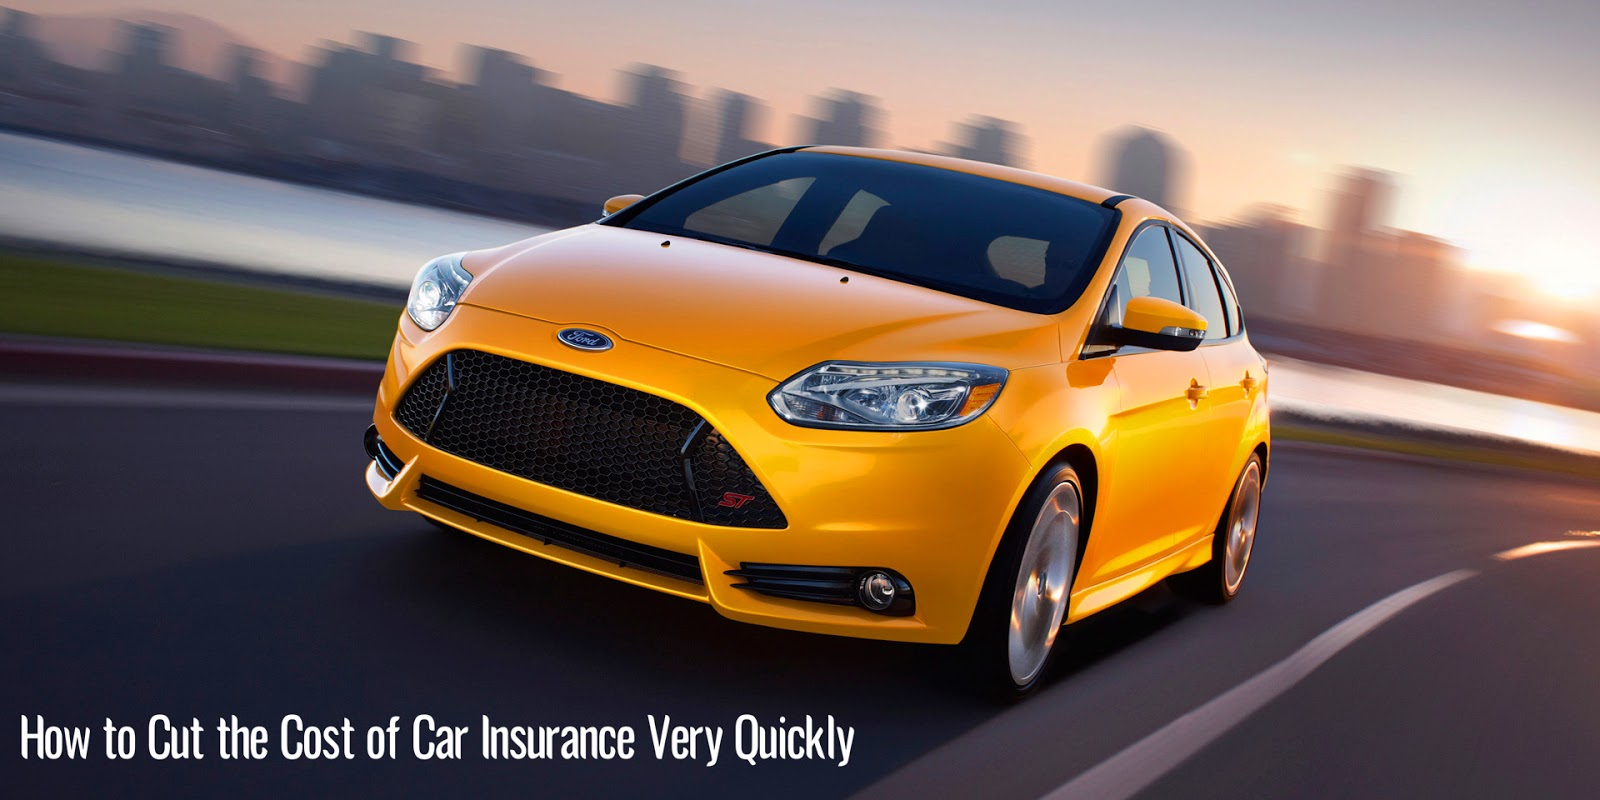 Car Insurance - Cheap Car Insurance - Car Insurance Cheap - Car Insurance Quote - Car Insurance The General - Geico Rental Car Coverage - Progressive Rental Car Insurance - Geico Rental Car Insurance - Most Expensive Cars To Insure - Most Expensive Car Insurance States - Car Insurance Deductible